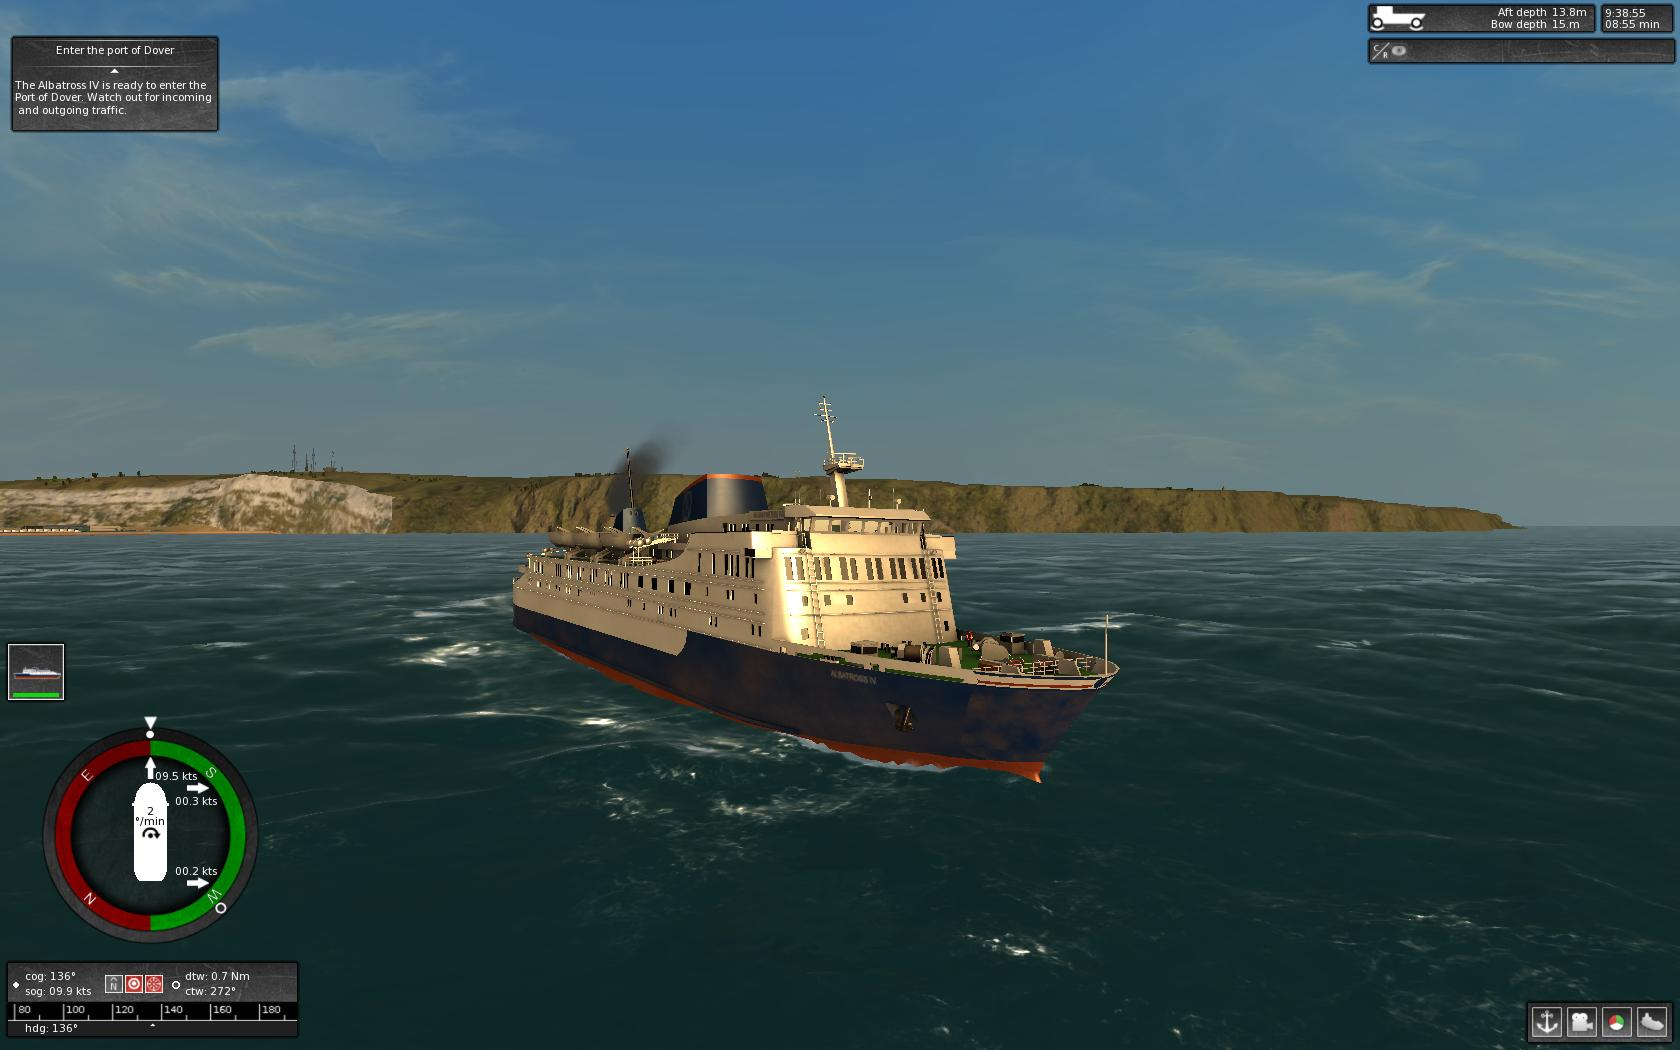 Download ship simulator extremes update v1. 3. 5 (free) for windows.